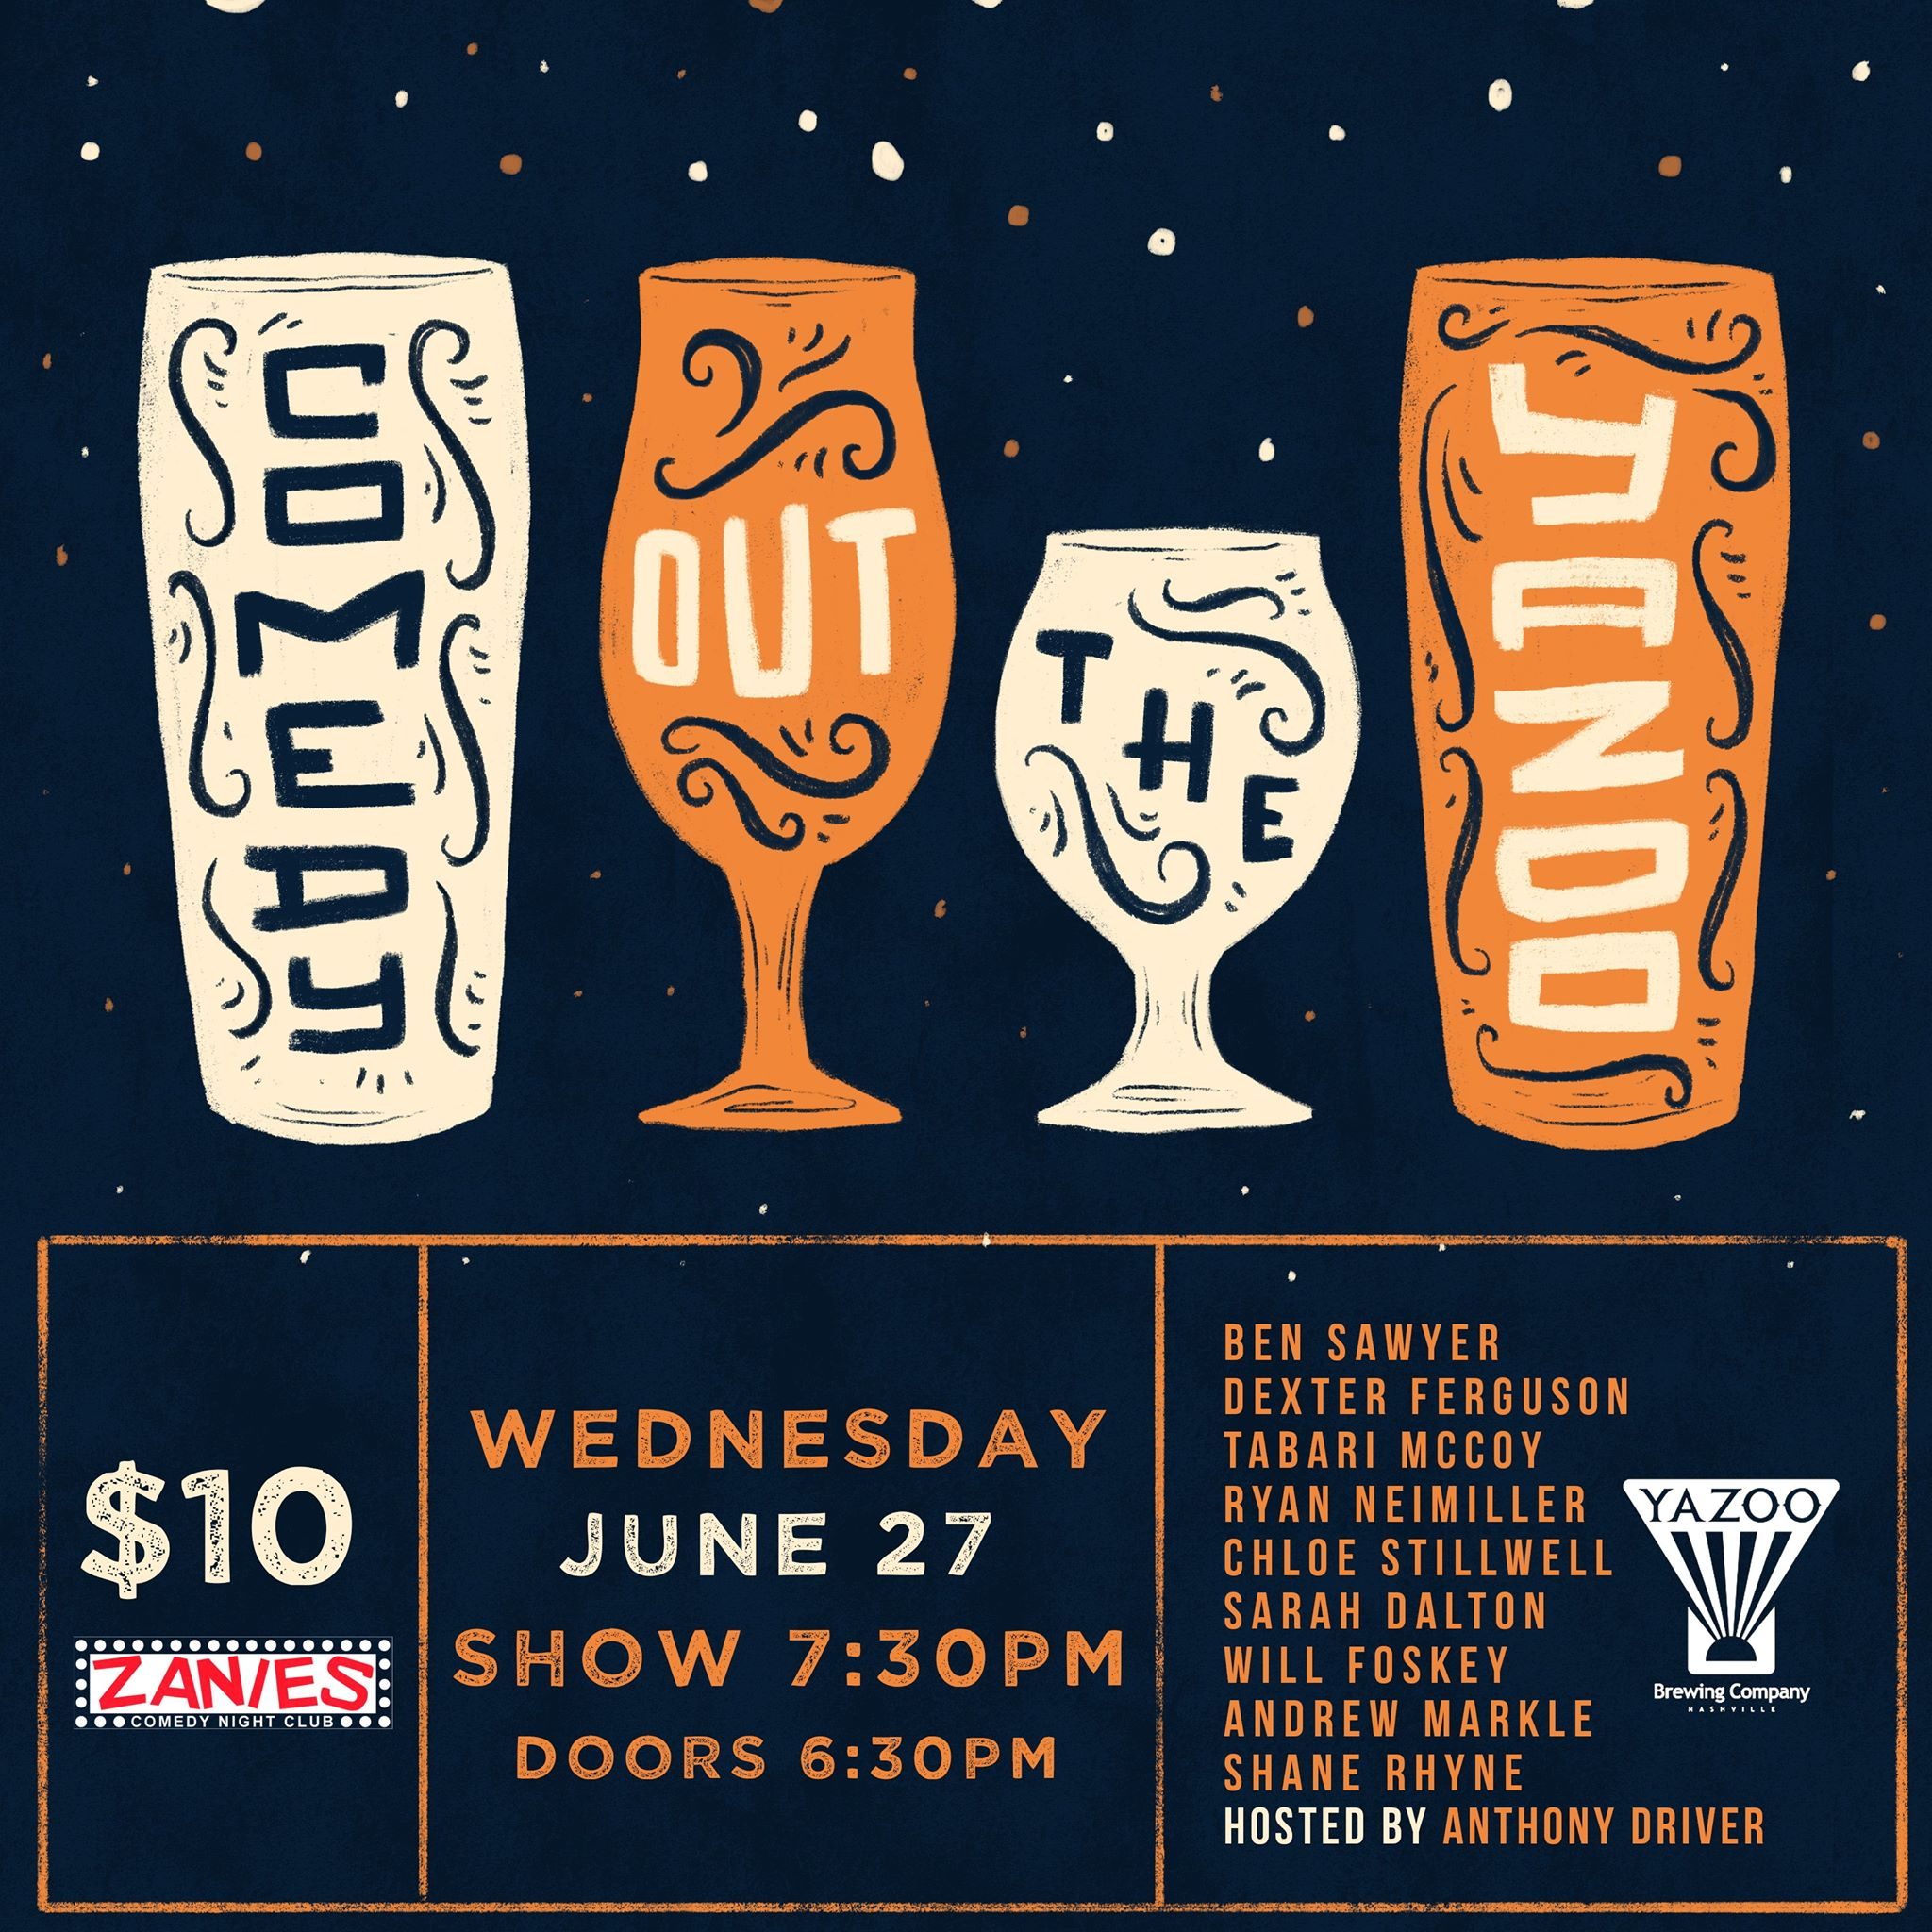 Zanies Yazoo flyer June 27 2018.jpg